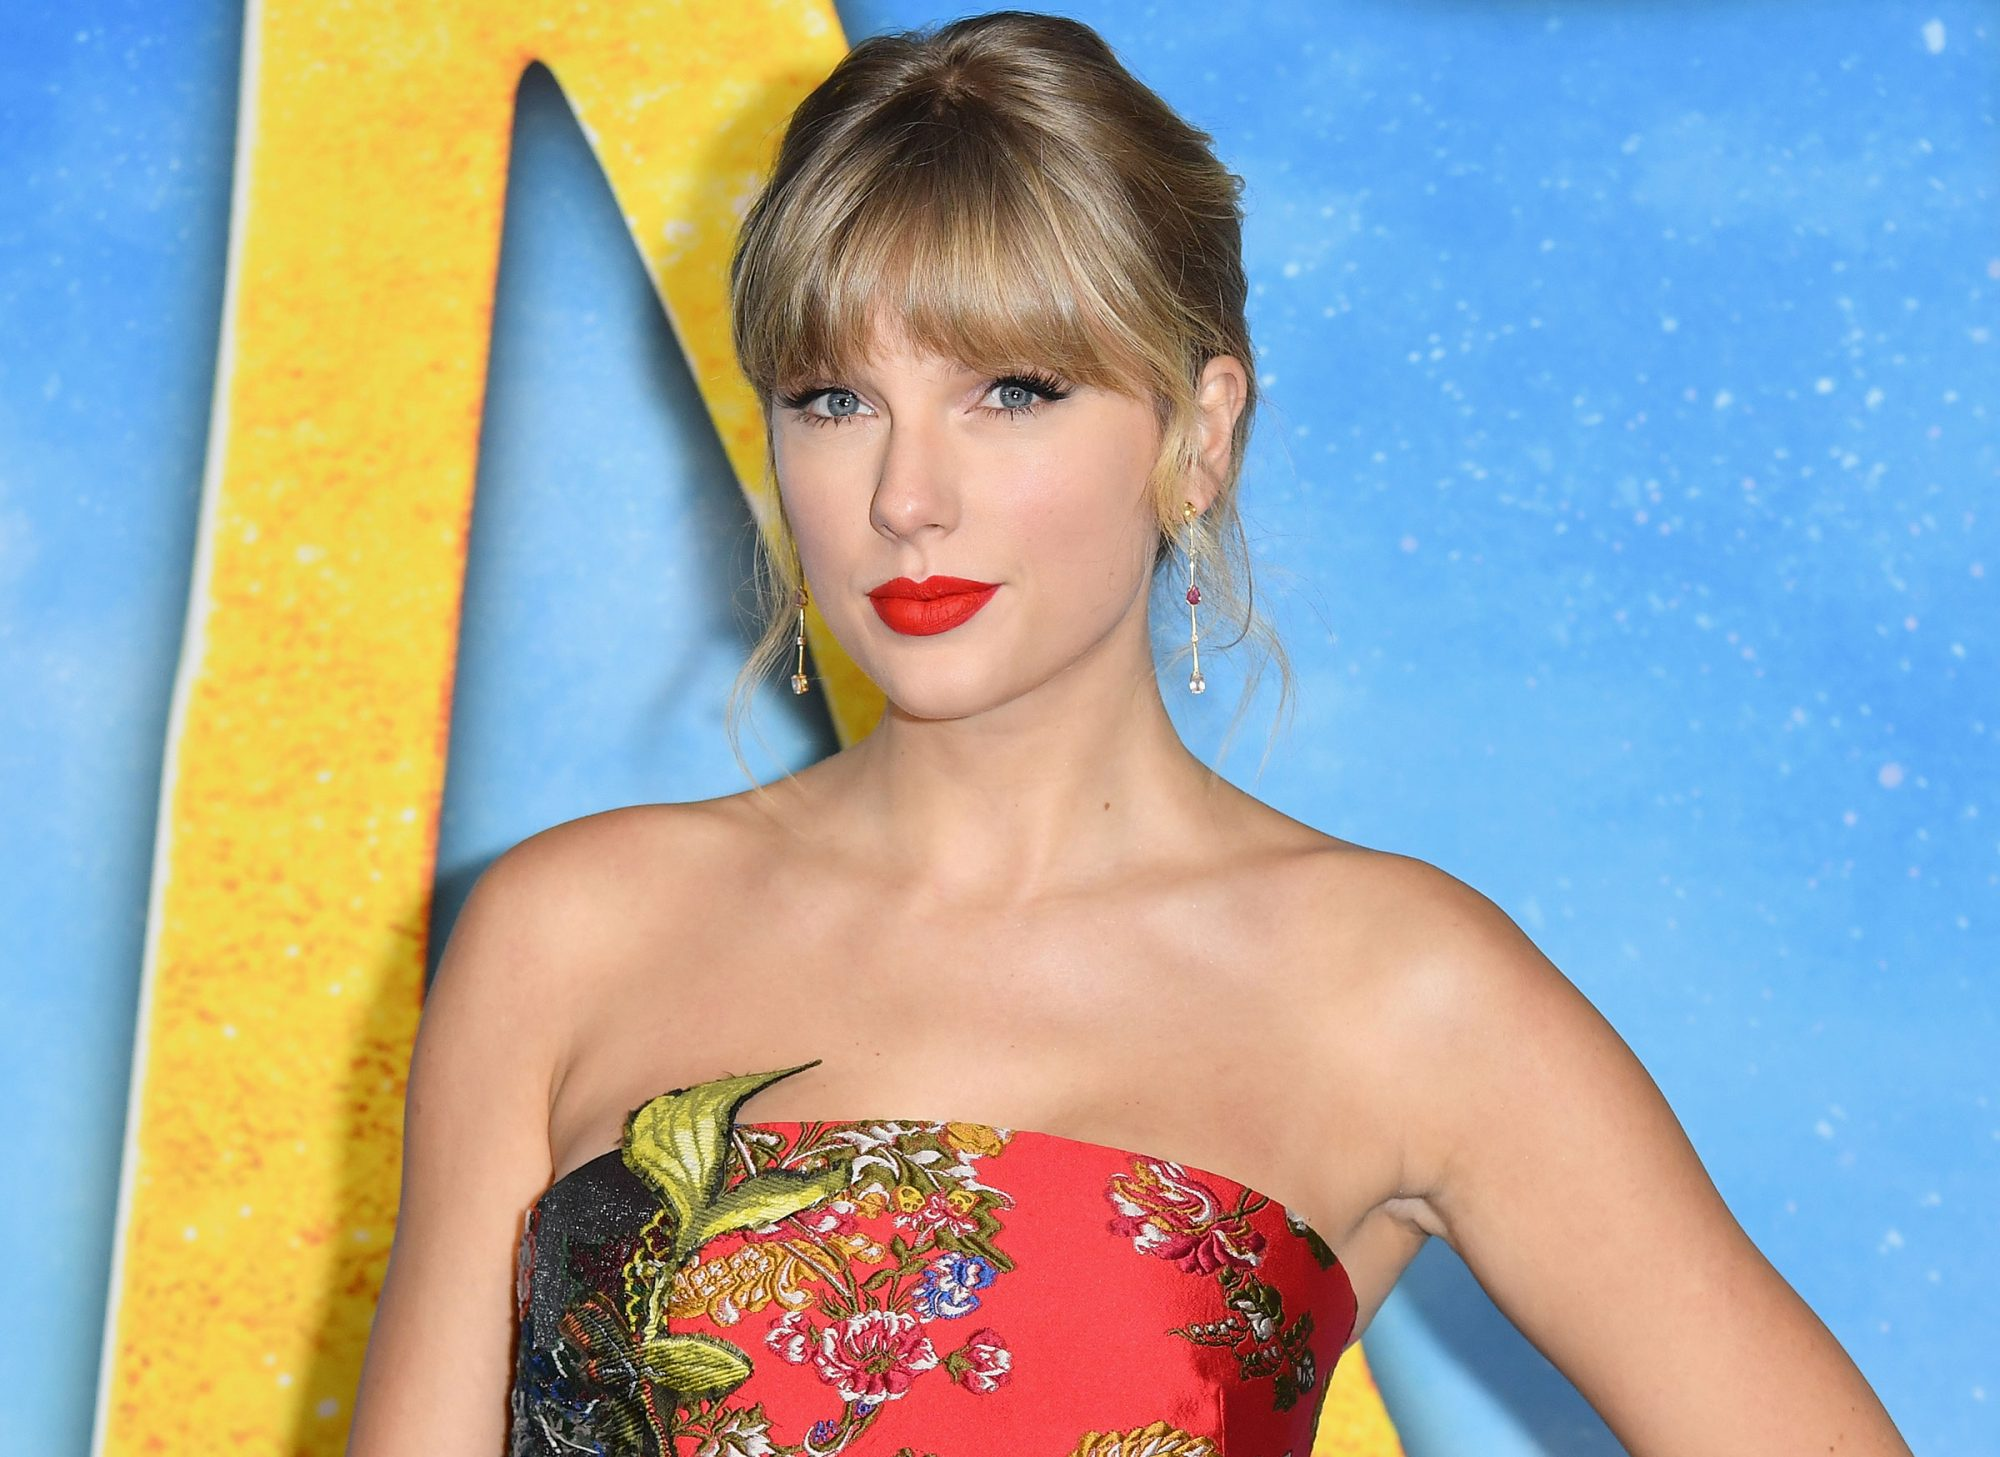 Taylor Swift donates $1 million to Nashville tornado relief funds